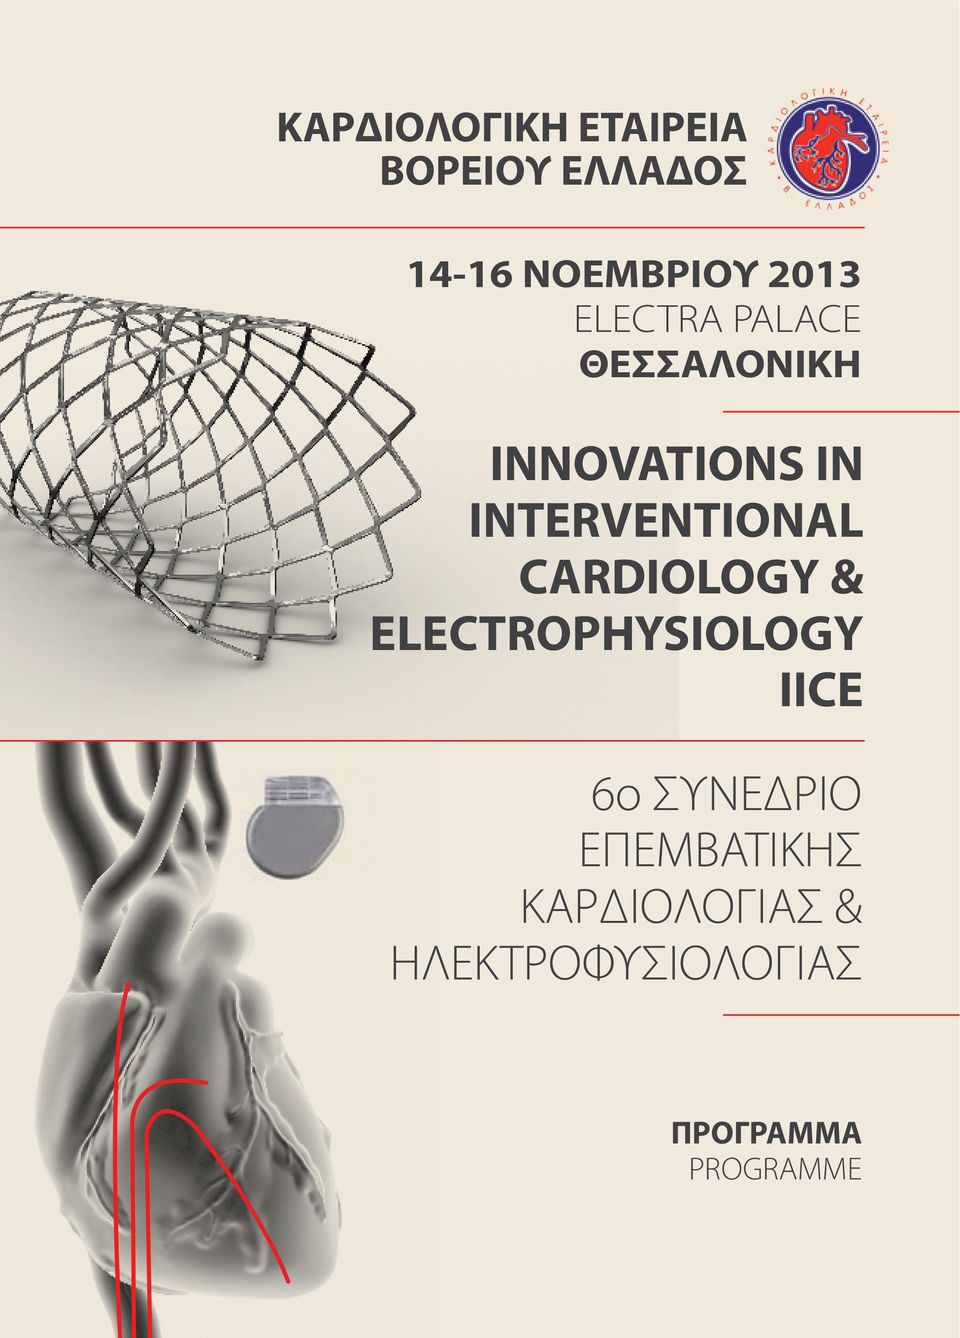 INTERVENTIONAL CARDIOLOGY & ELECTROPHYSIOLOGY IICE 6ο